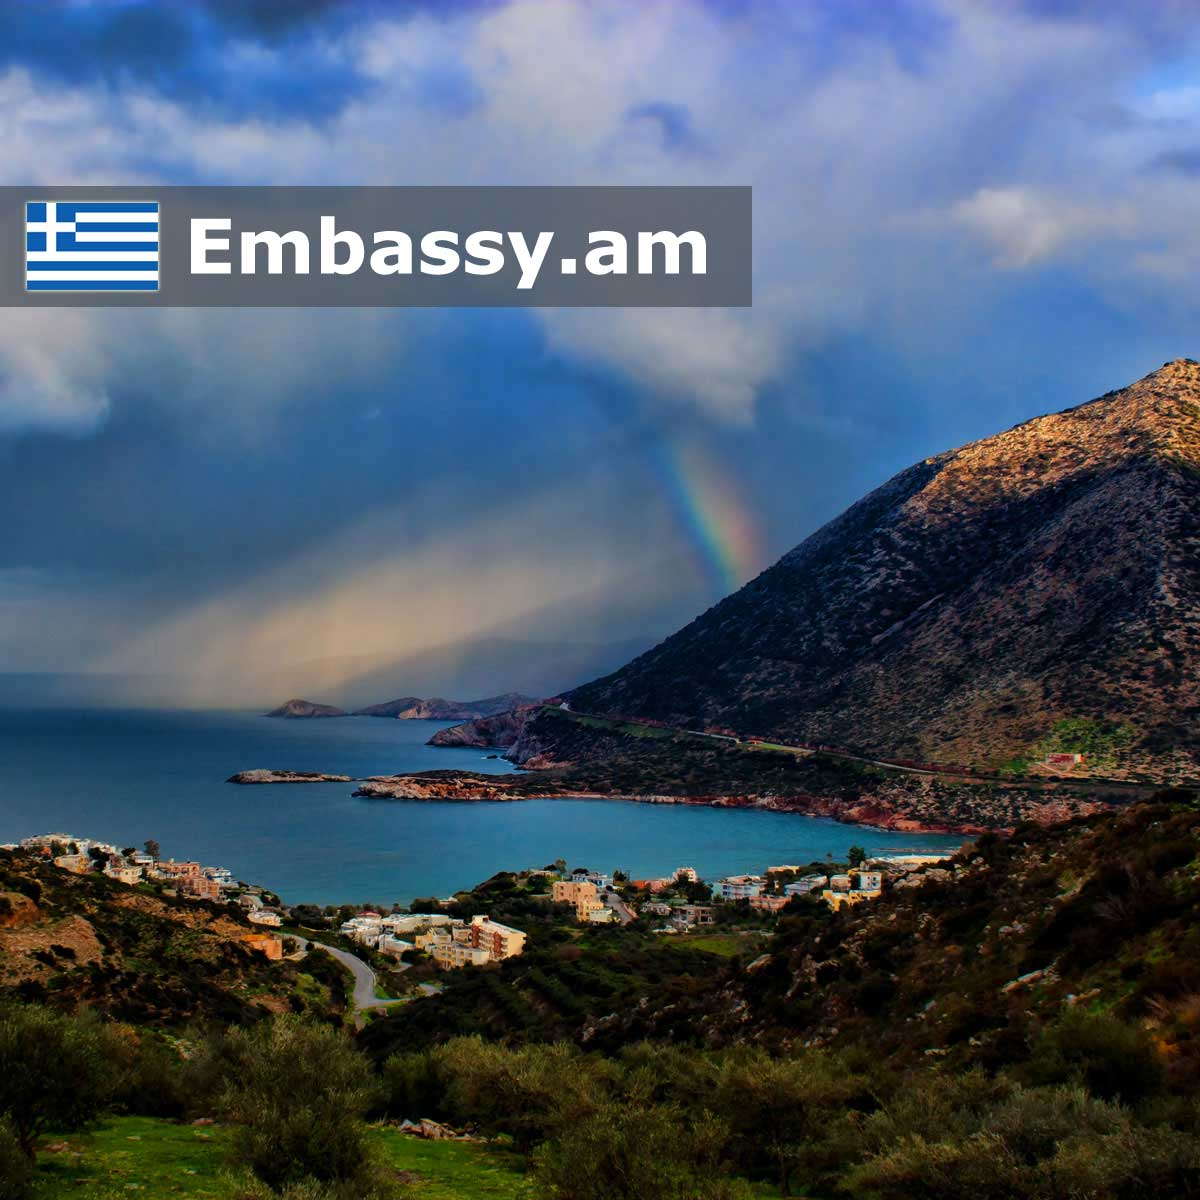 Crete - Hotels in Greece - Embassy.am